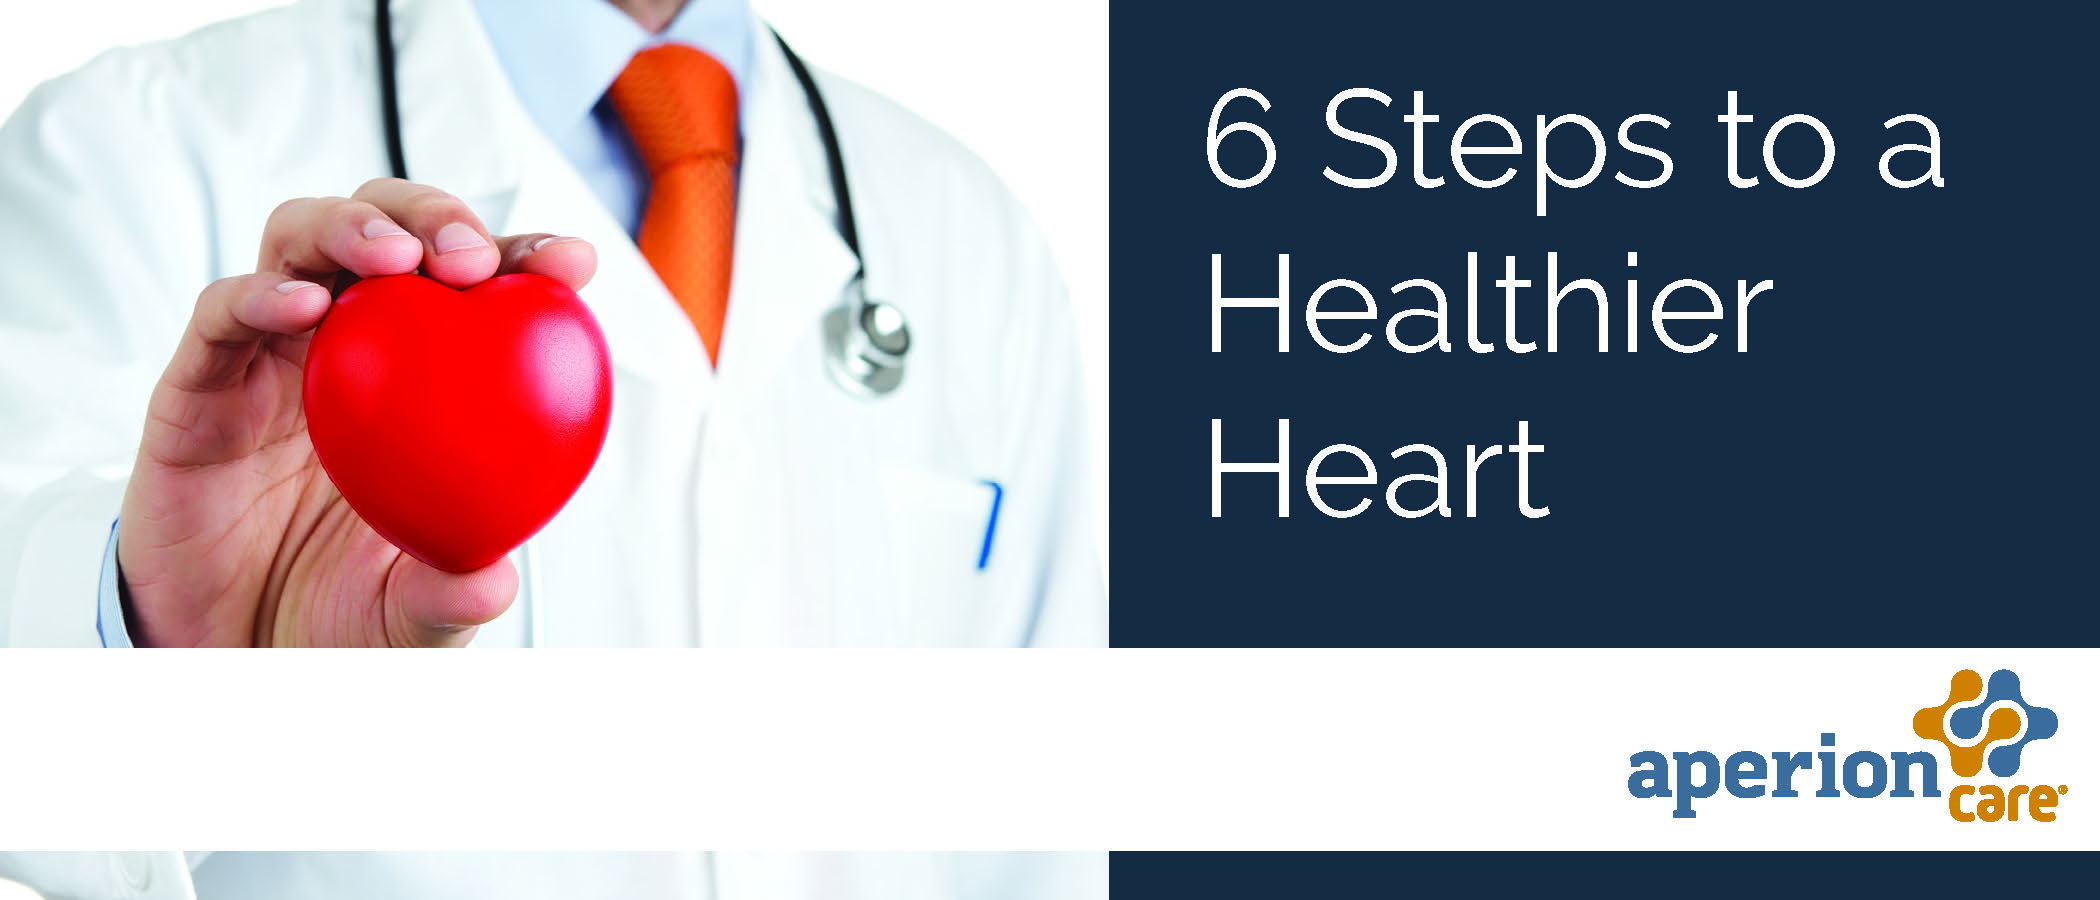 6 Steps to a Healthier Heart